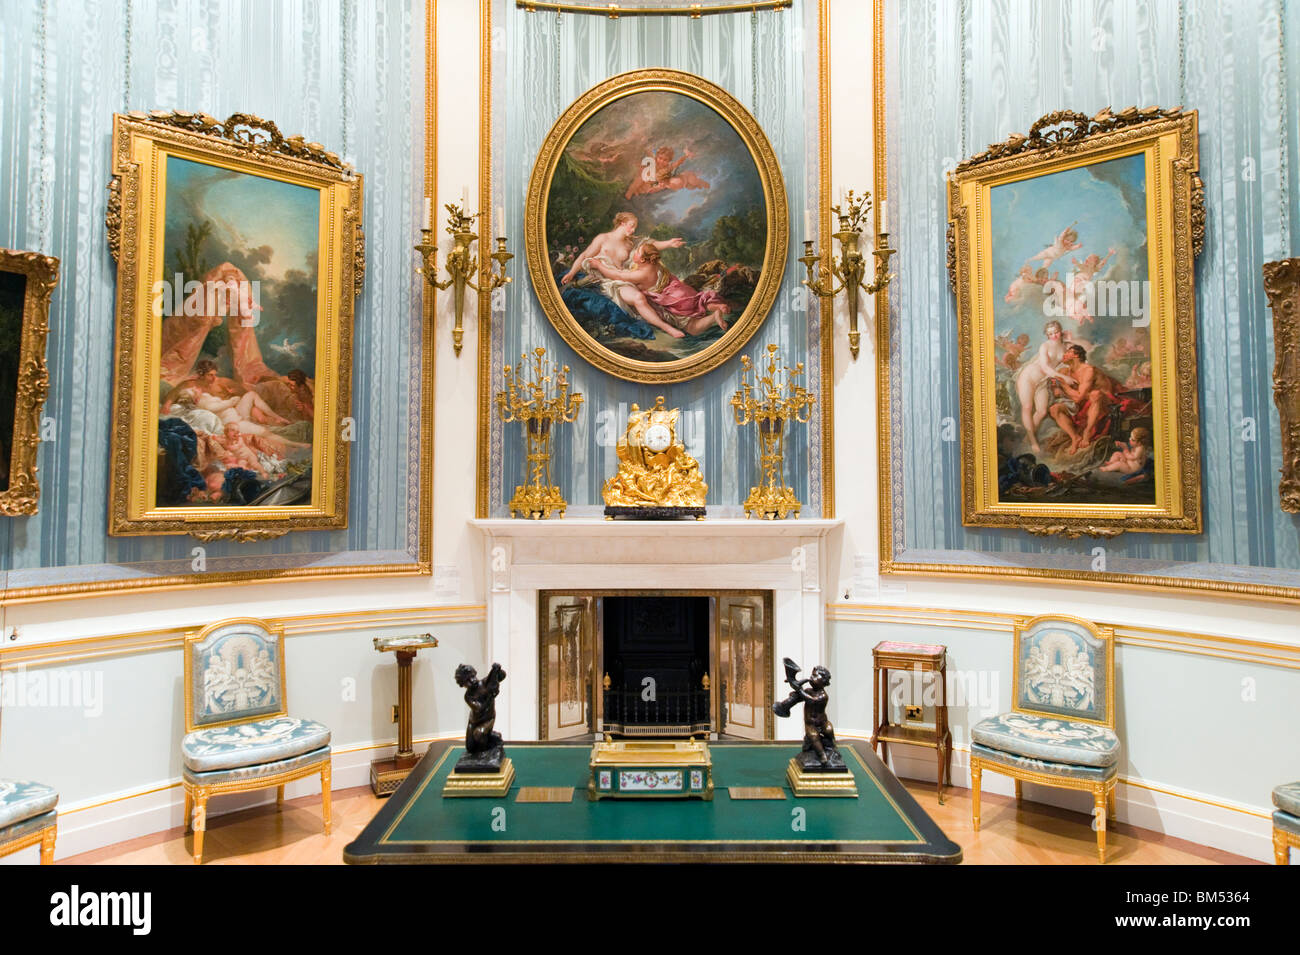 The Wallace Collection art gallery, London, England, UK - Stock Image